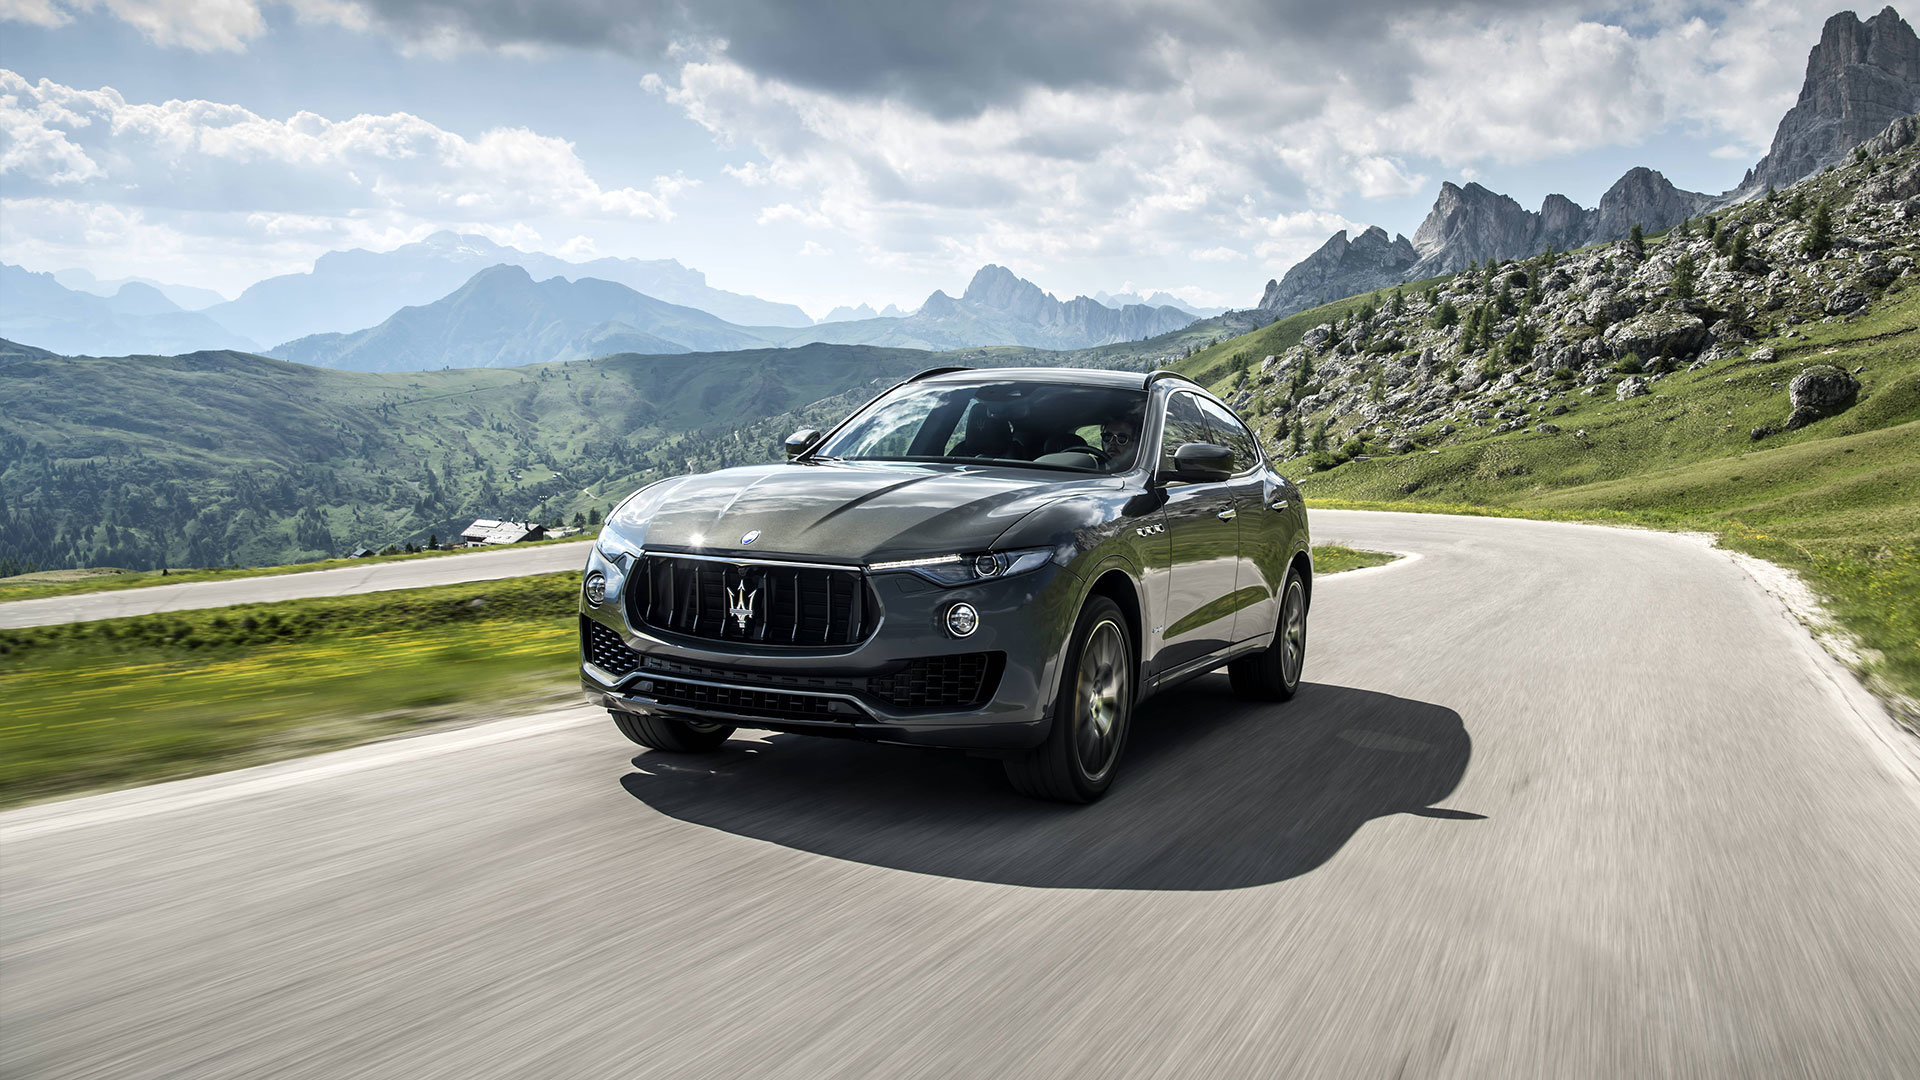 4 door 2018 maserati levante gransport driving through the country in Wilkes Barre PA